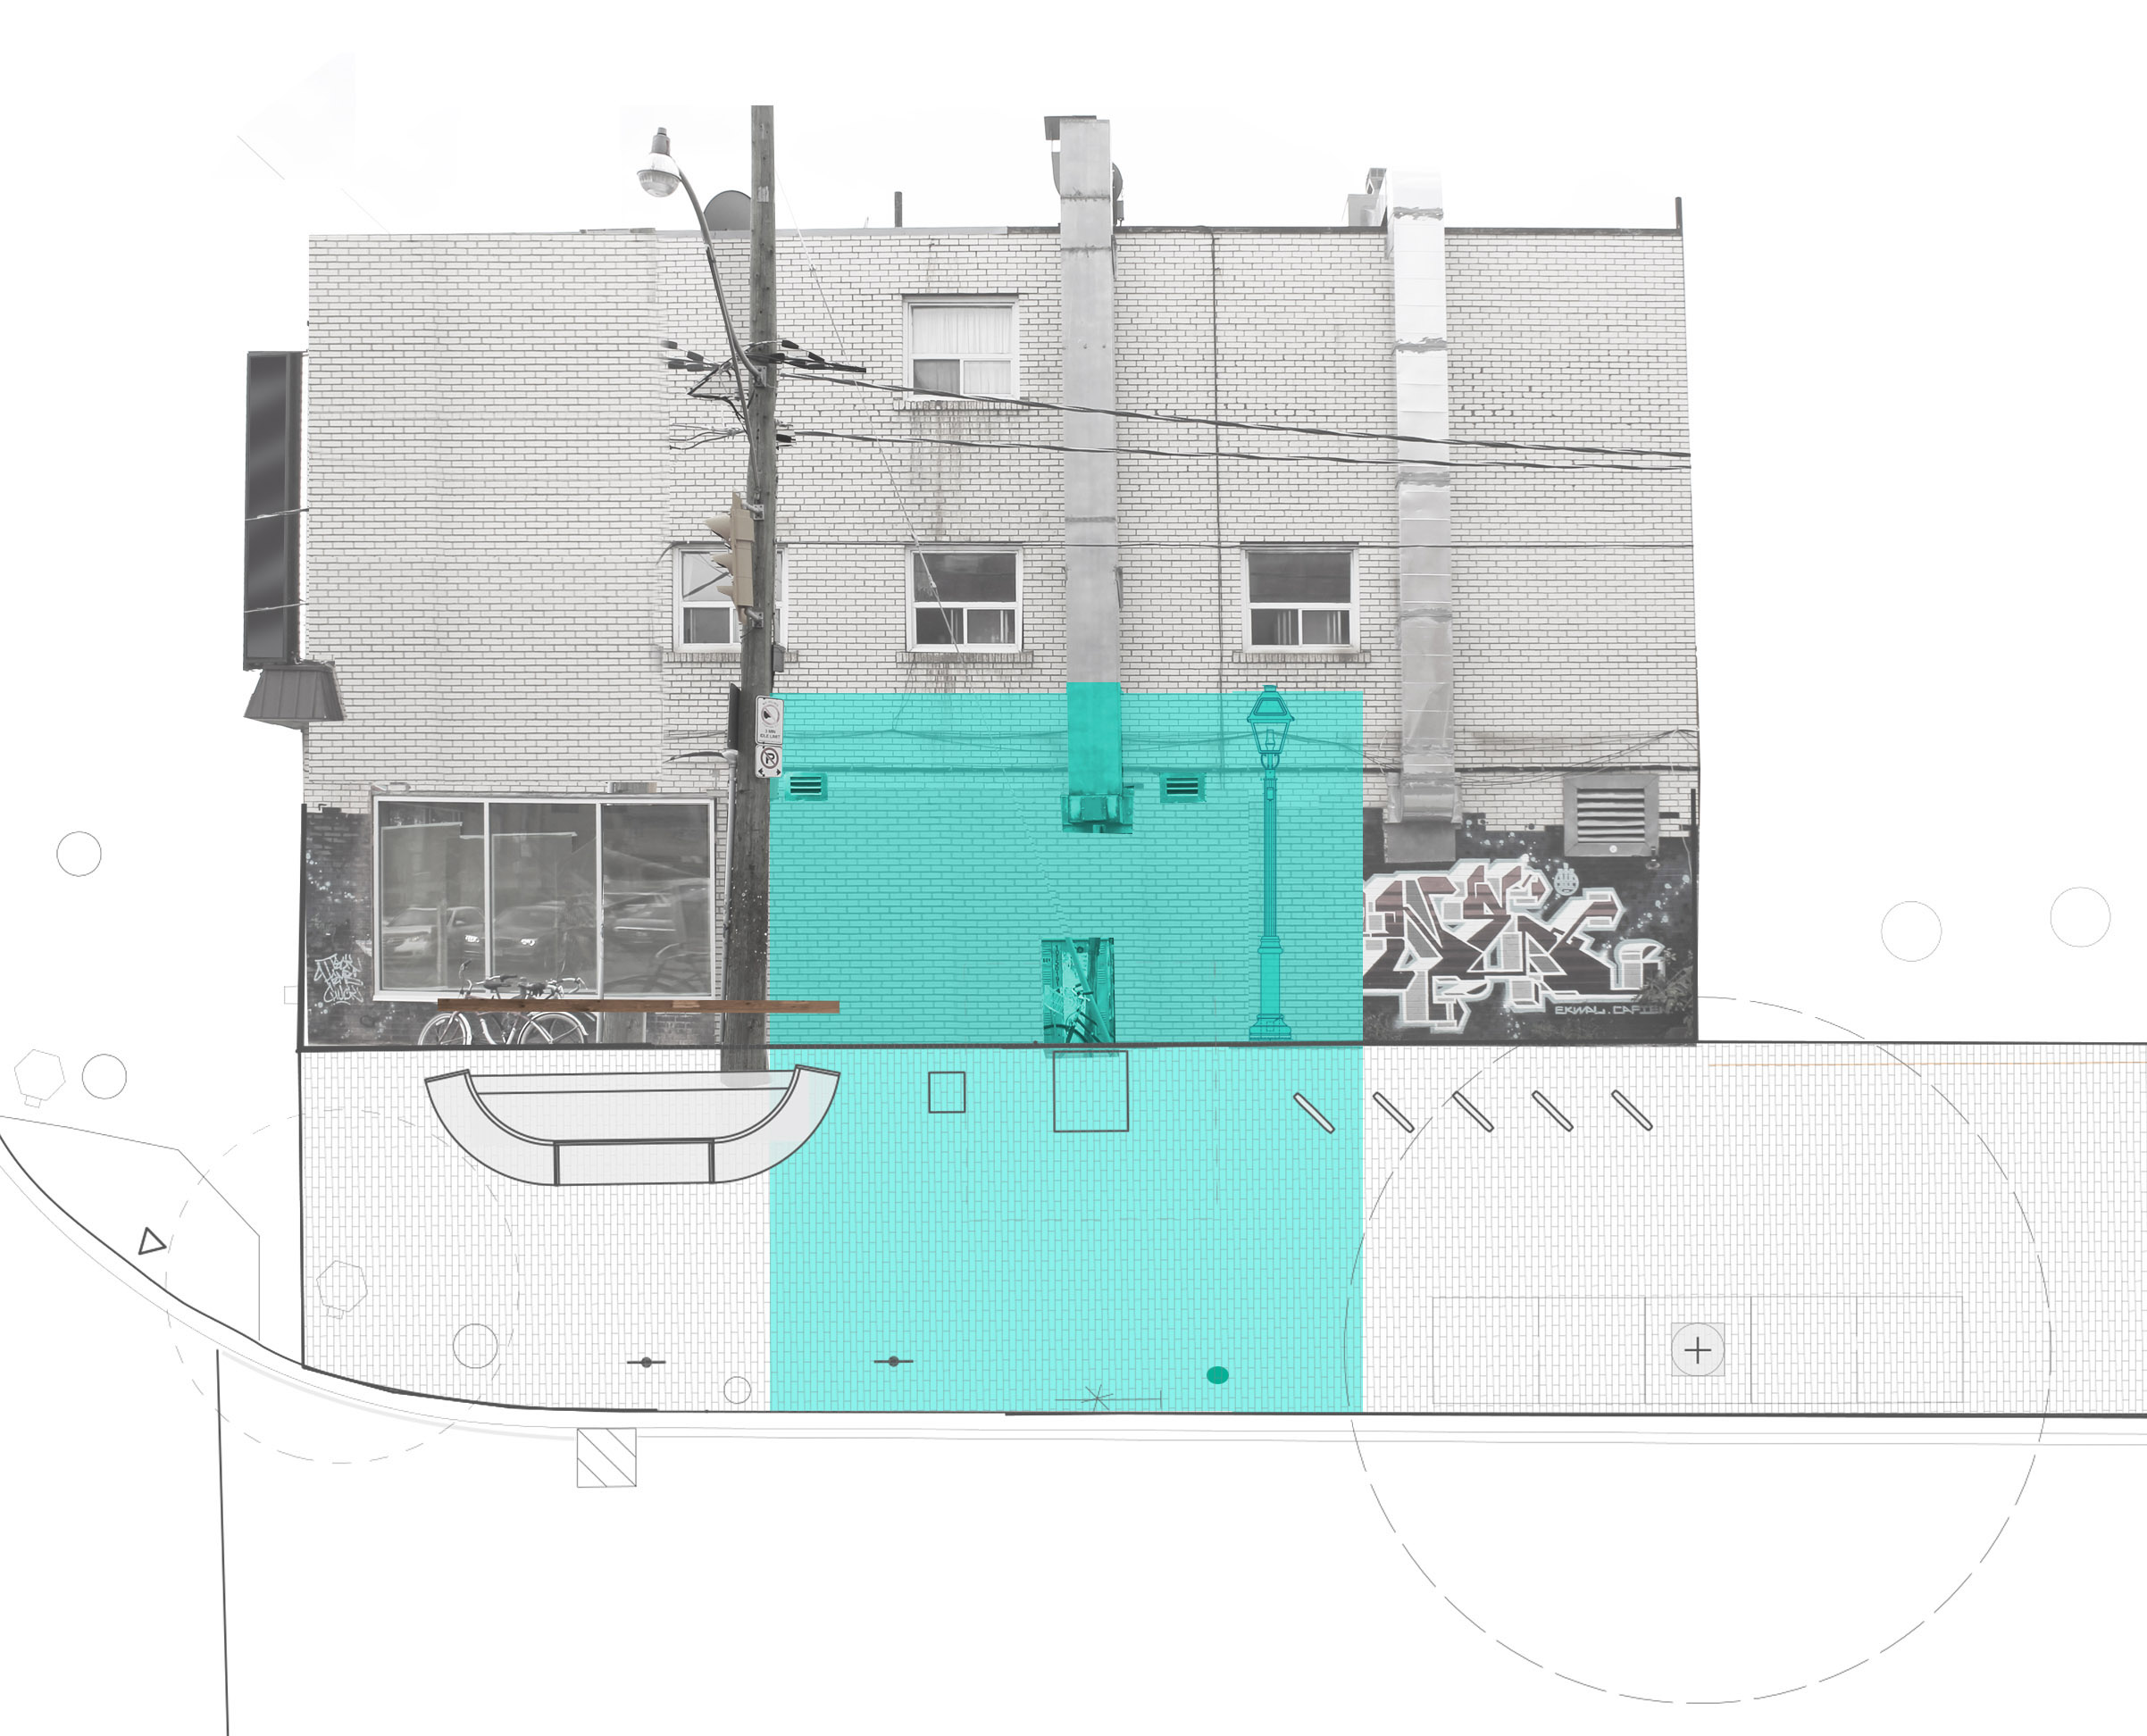 Design Drawing 2014 - The Living Room: Dovercourt Road